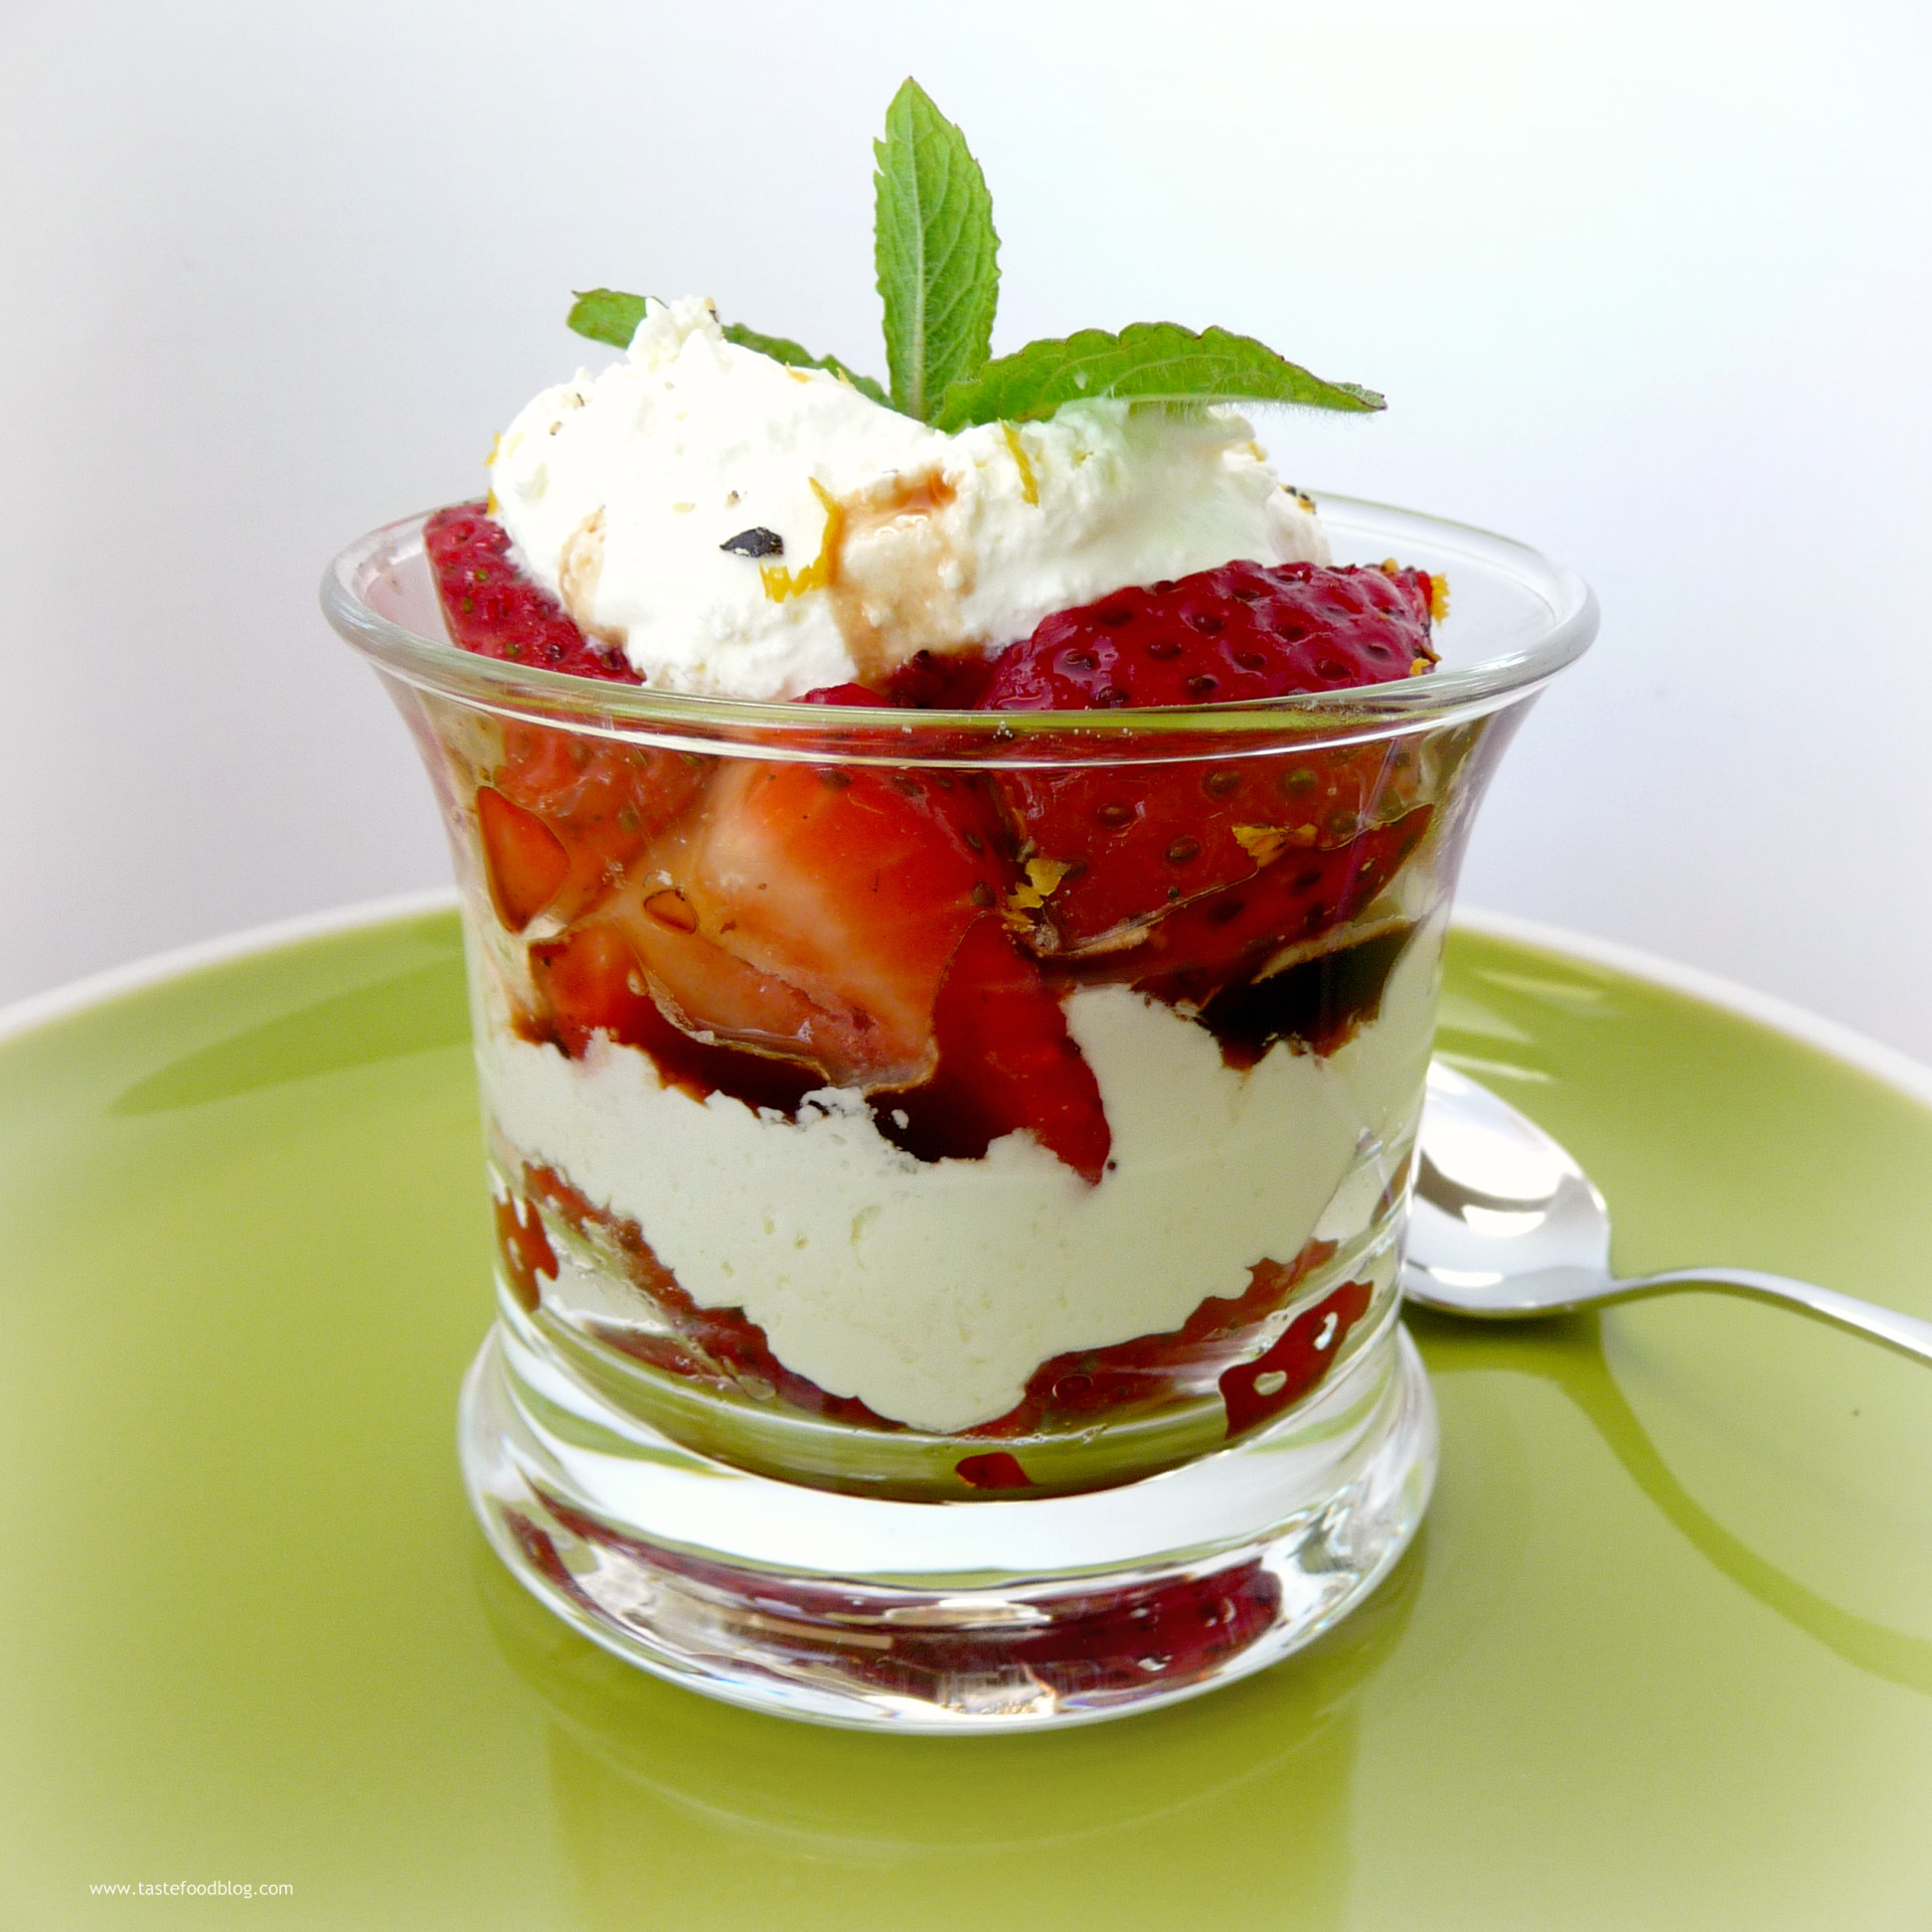 Strawberry Cream Parfaits with Black Pepper and Balsamic Syrup